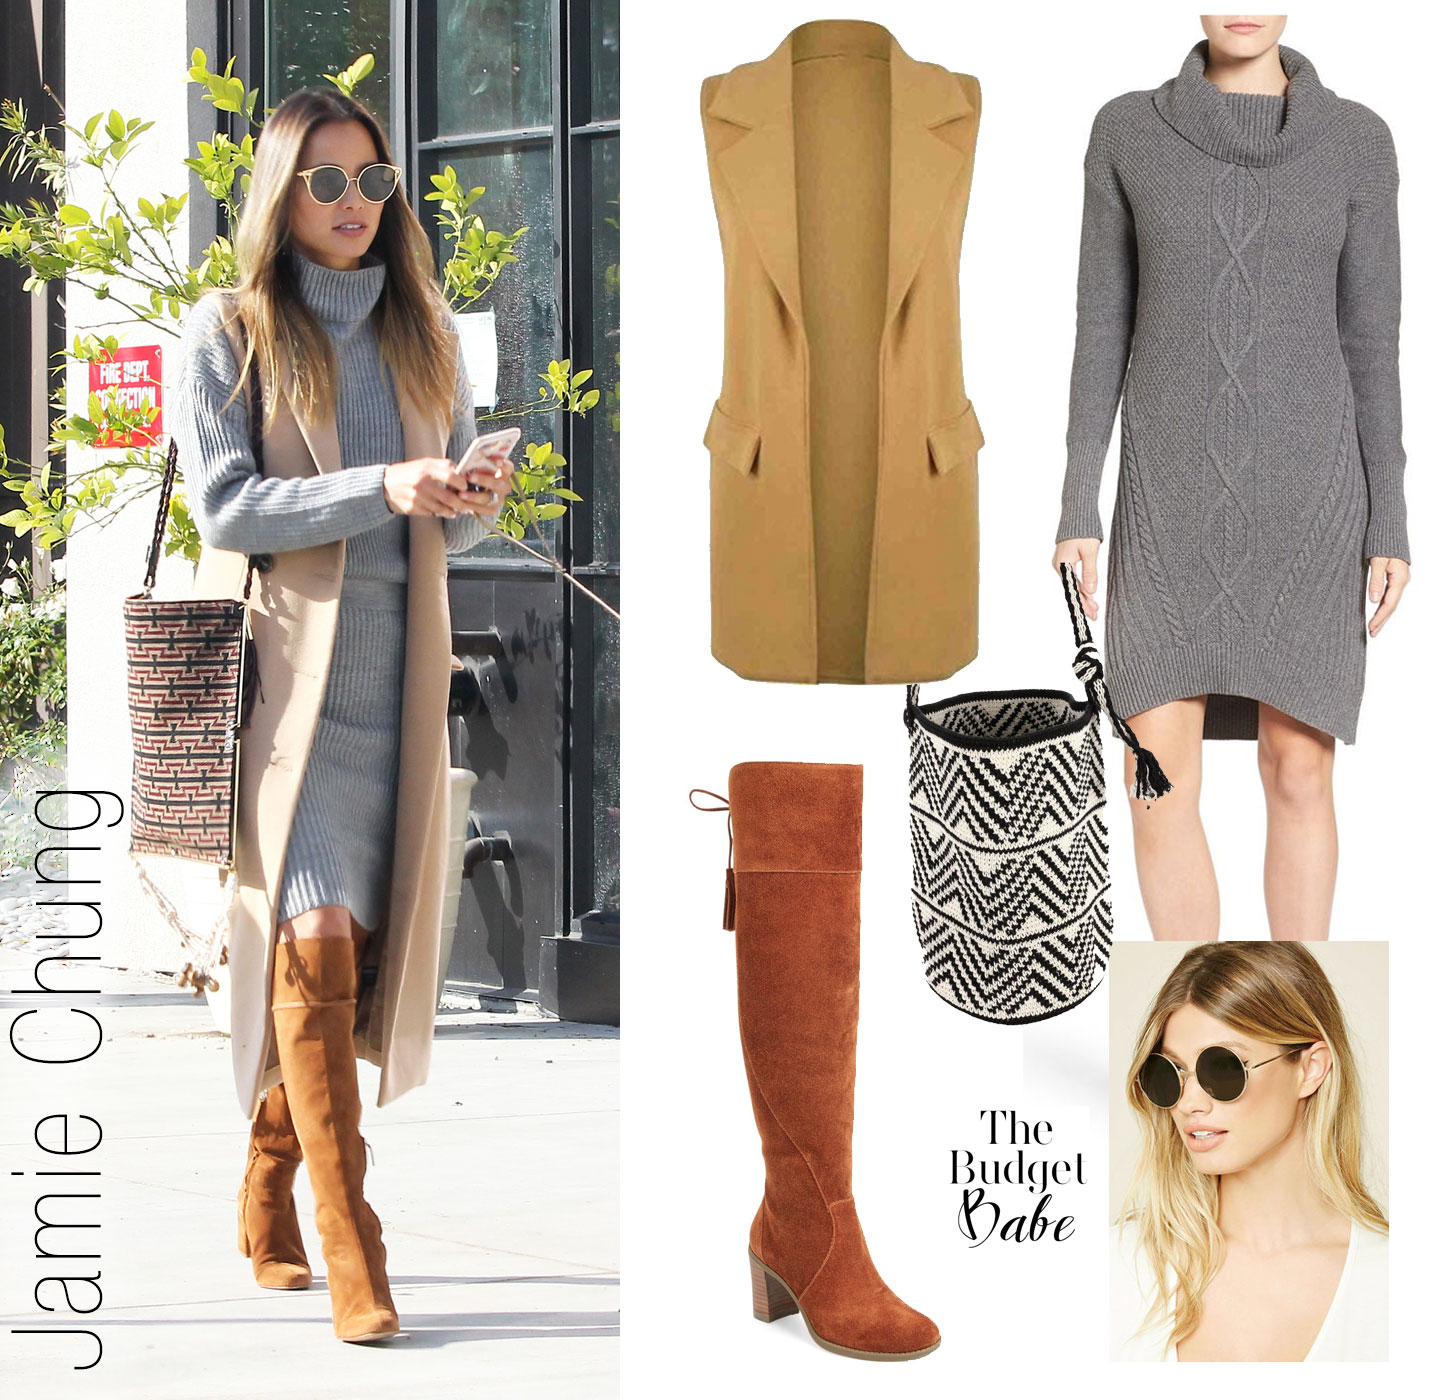 Recreate Jamie Chung's grey sweaterdress and camel vest look for less.